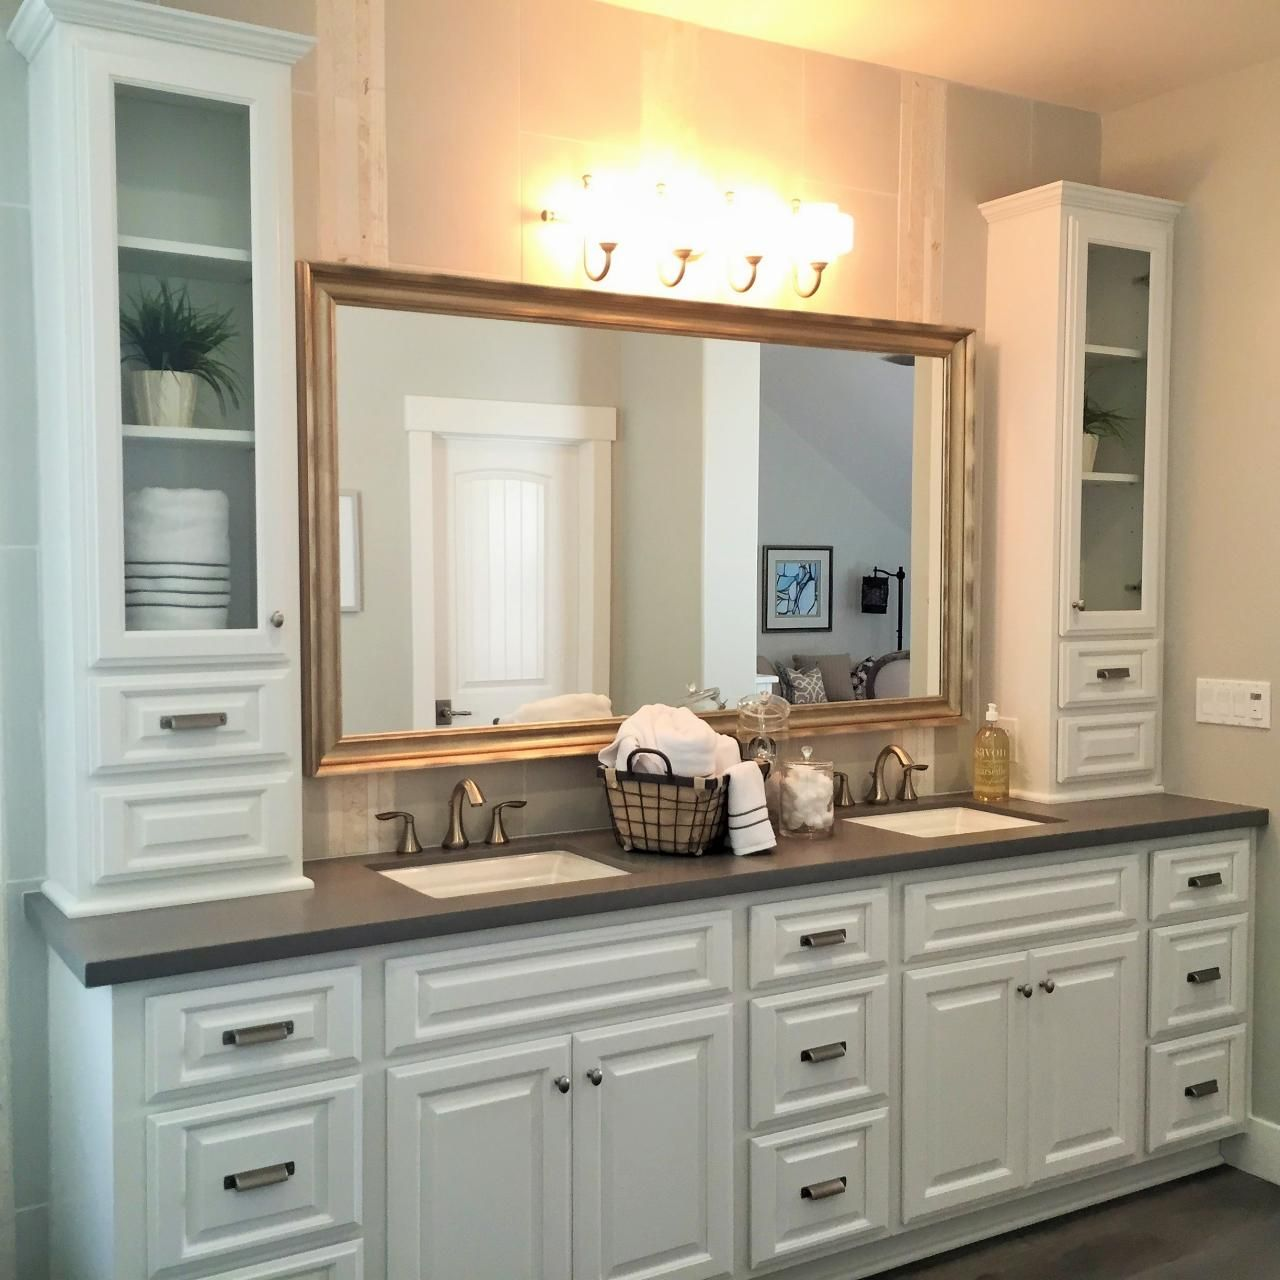 White Bathroom Decor Ideas Pictures Tips From Hgtv: Transitional Master Bathroom Features Large White Vanity